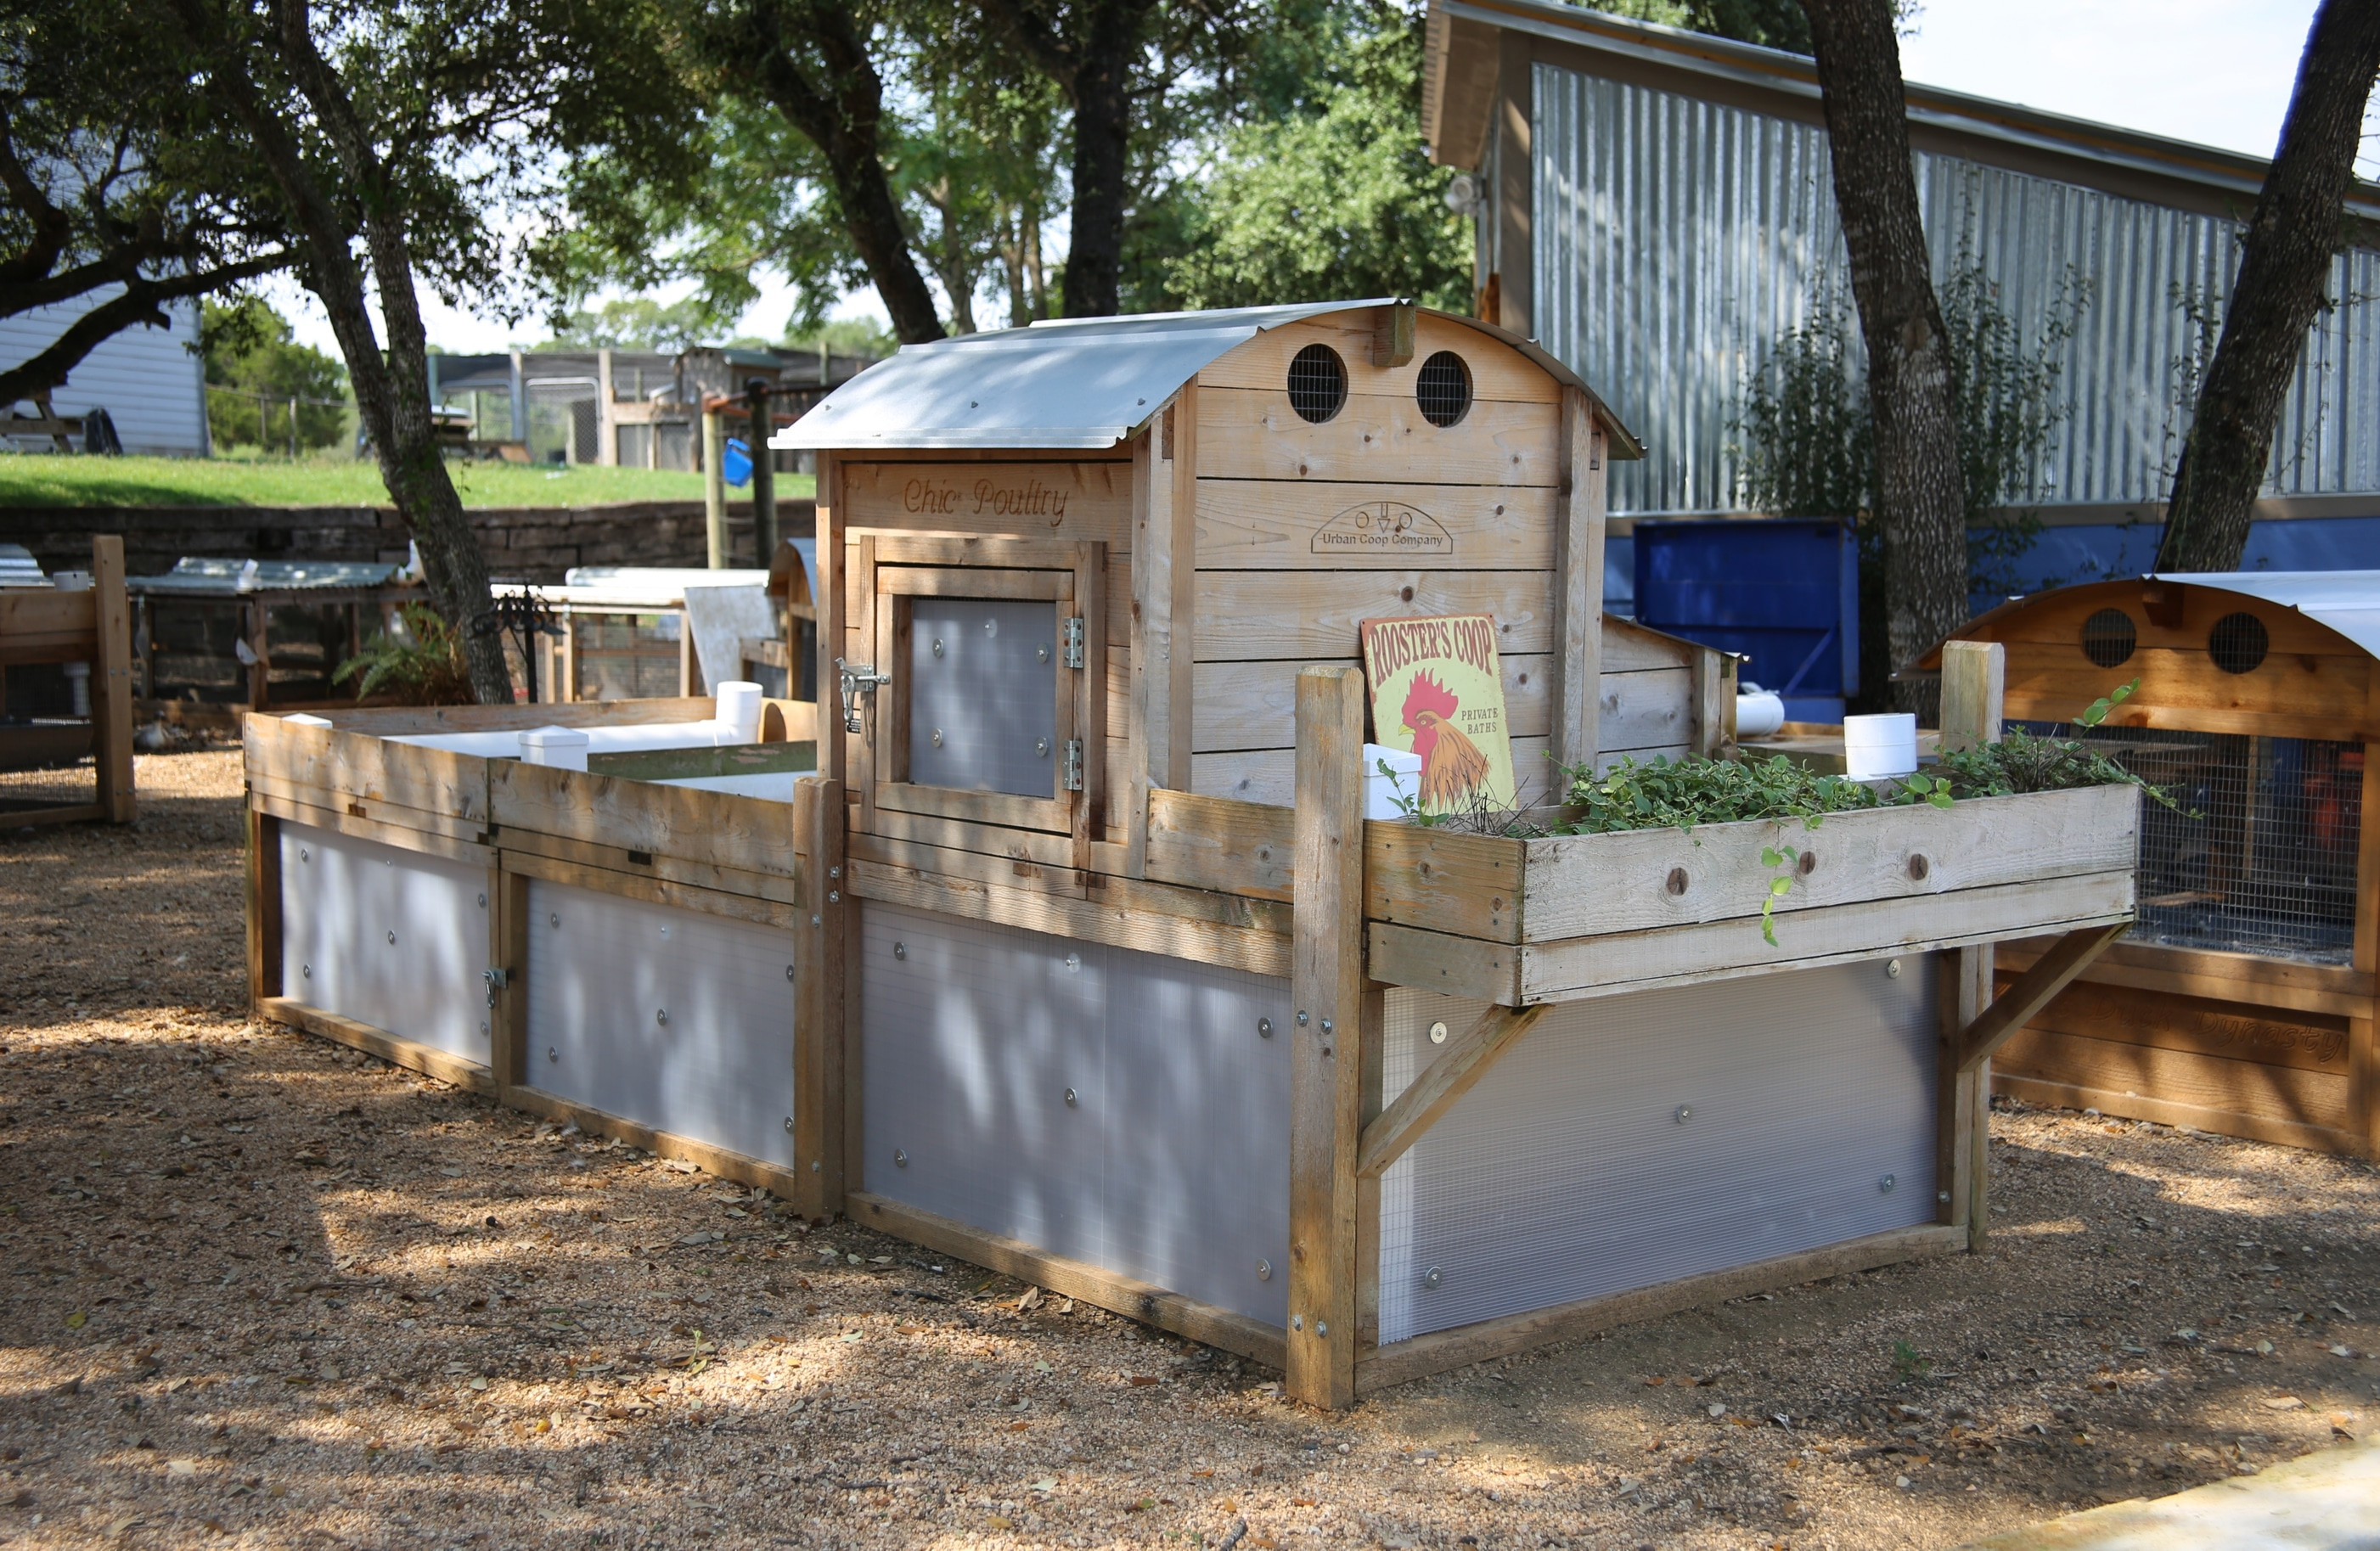 Best ideas about Backyard Chicken Coop . Save or Pin Round Top Backyard™ Chicken Coop Now.